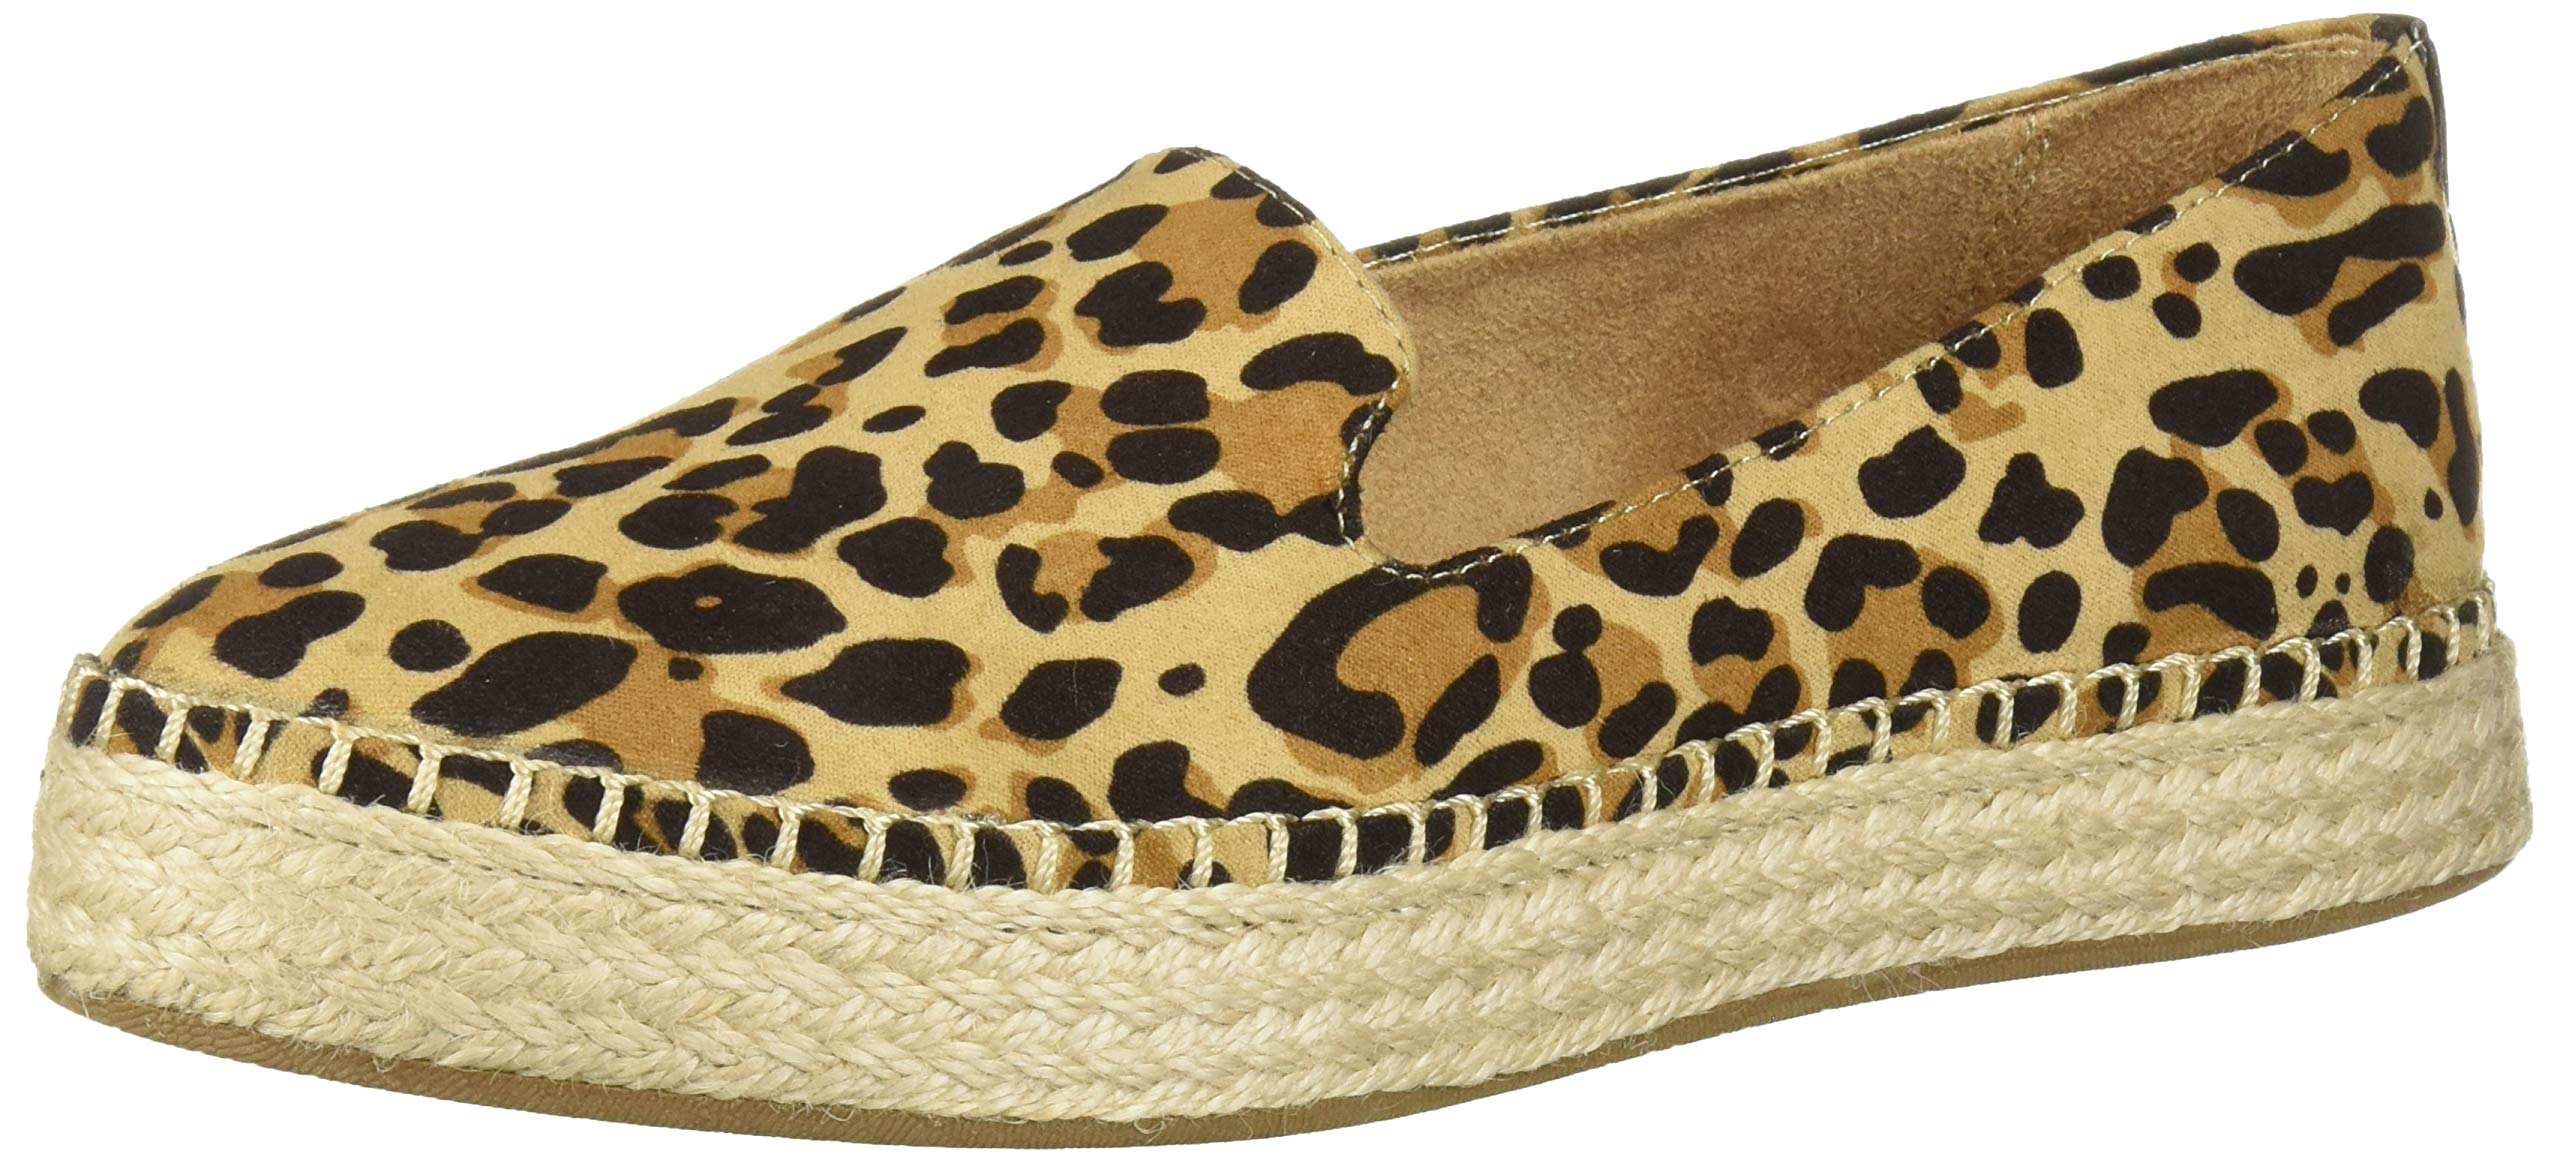 Dr. Scholl's Shoes Women's Find Me Loafer Flat, Tan/Black Leopard, 9 by Dr. Scholl's Shoes